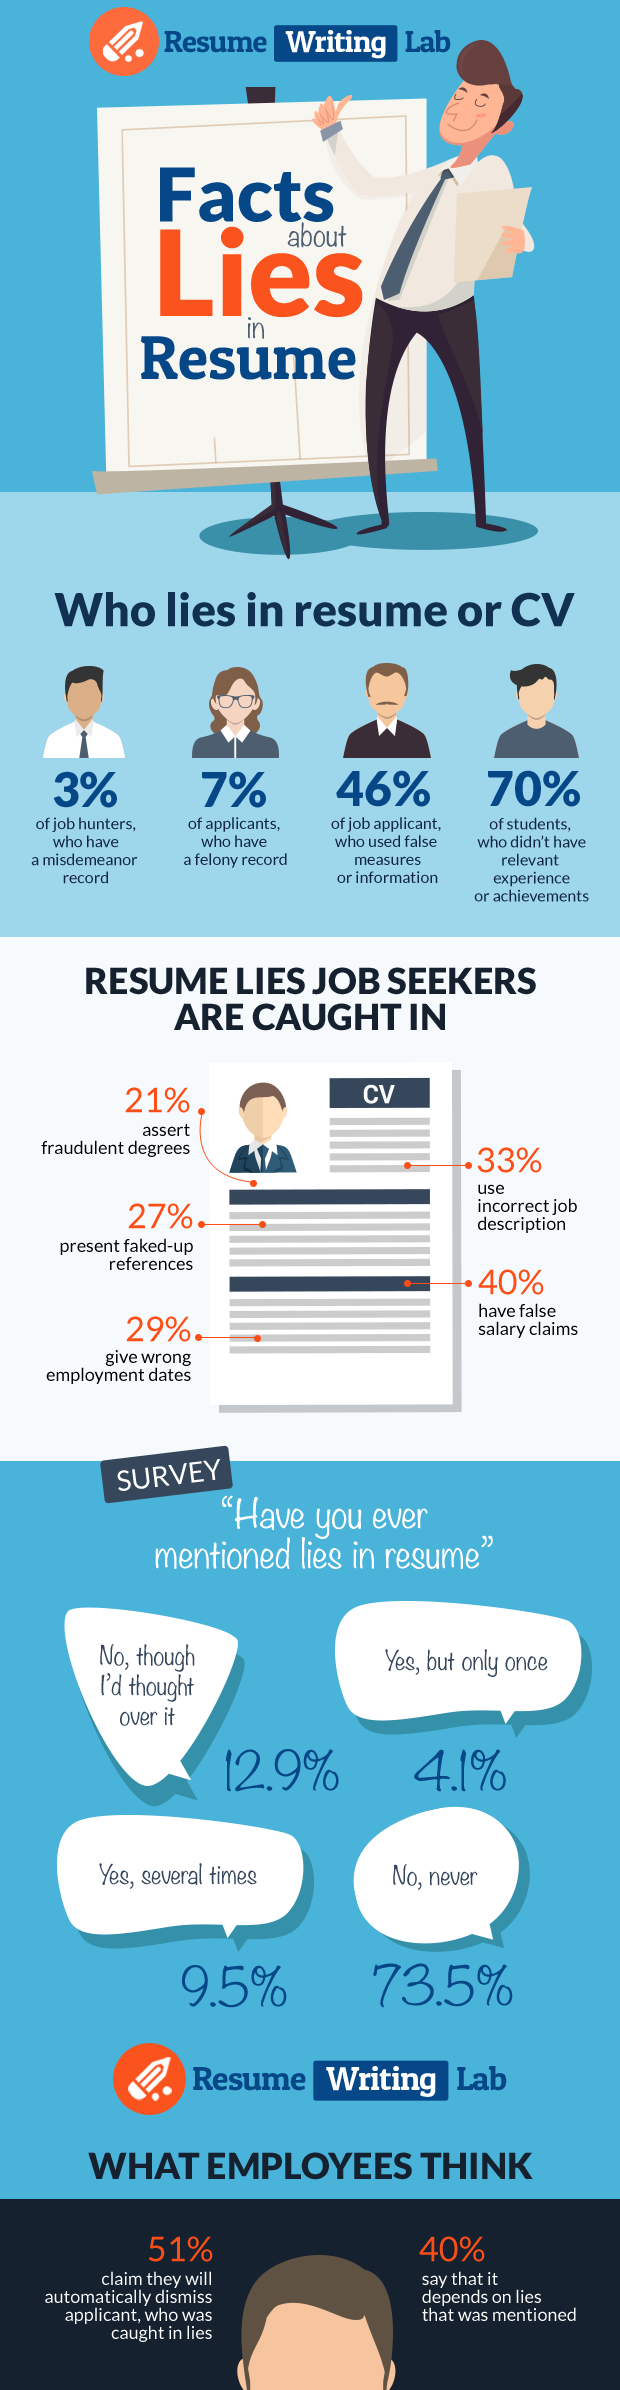 facts about lies in resume Facts, Writing lab, Resume